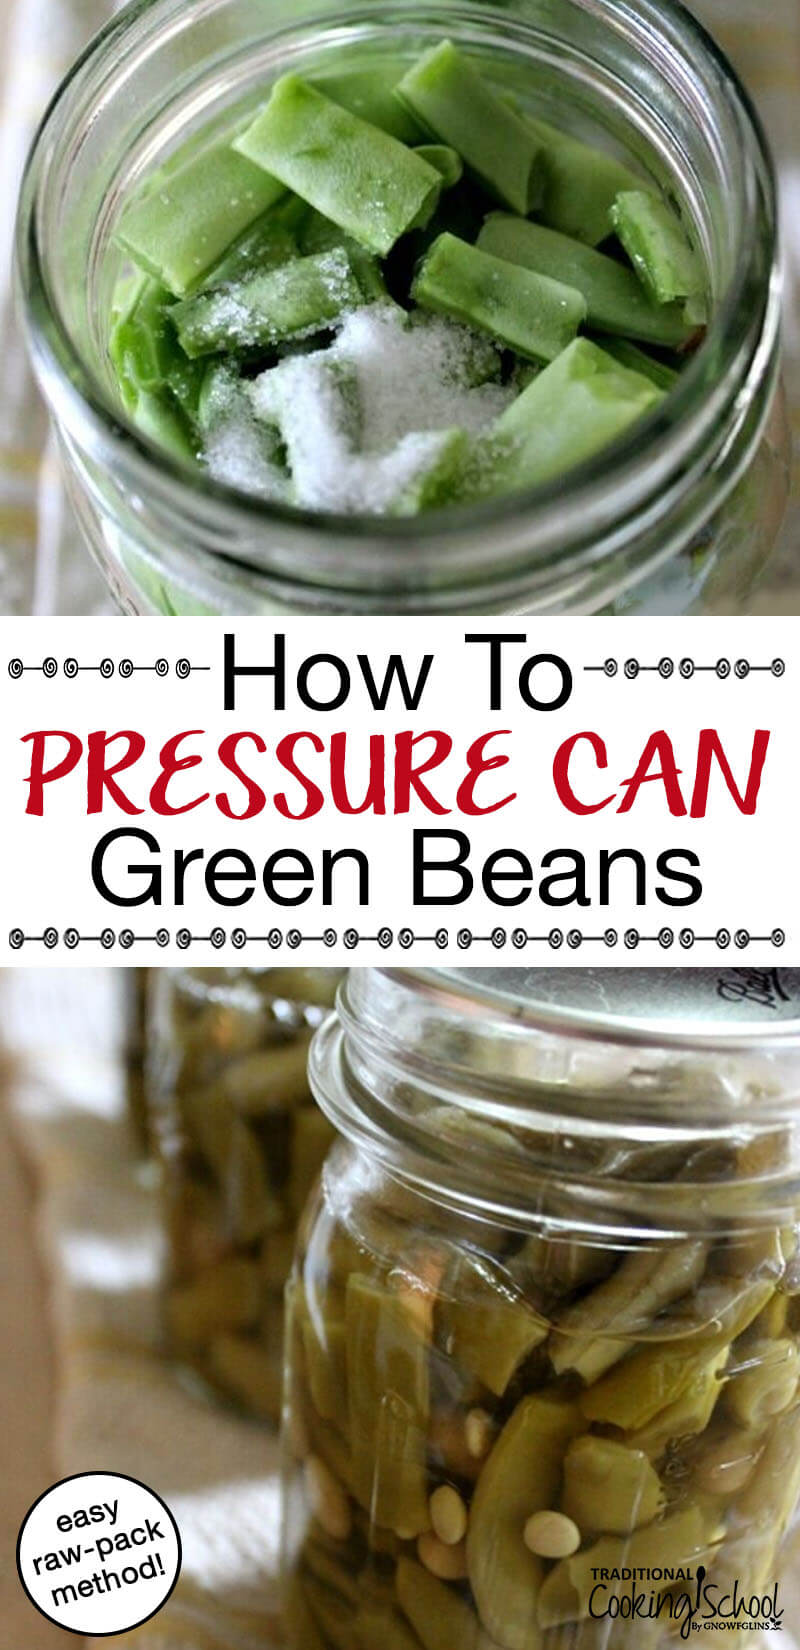 How To Pressure Can Green Beans (Raw-Pack Method) We can't sacrifice food safety. I consider some quick canning methods to be unsafe. Not the raw pack method, though -- it's both safe and time-saving. Learn how to pressure can green beans using the raw-pack method! #canning #pressurecanning #greenbeans #rawpack #healthy #recipe #recipes